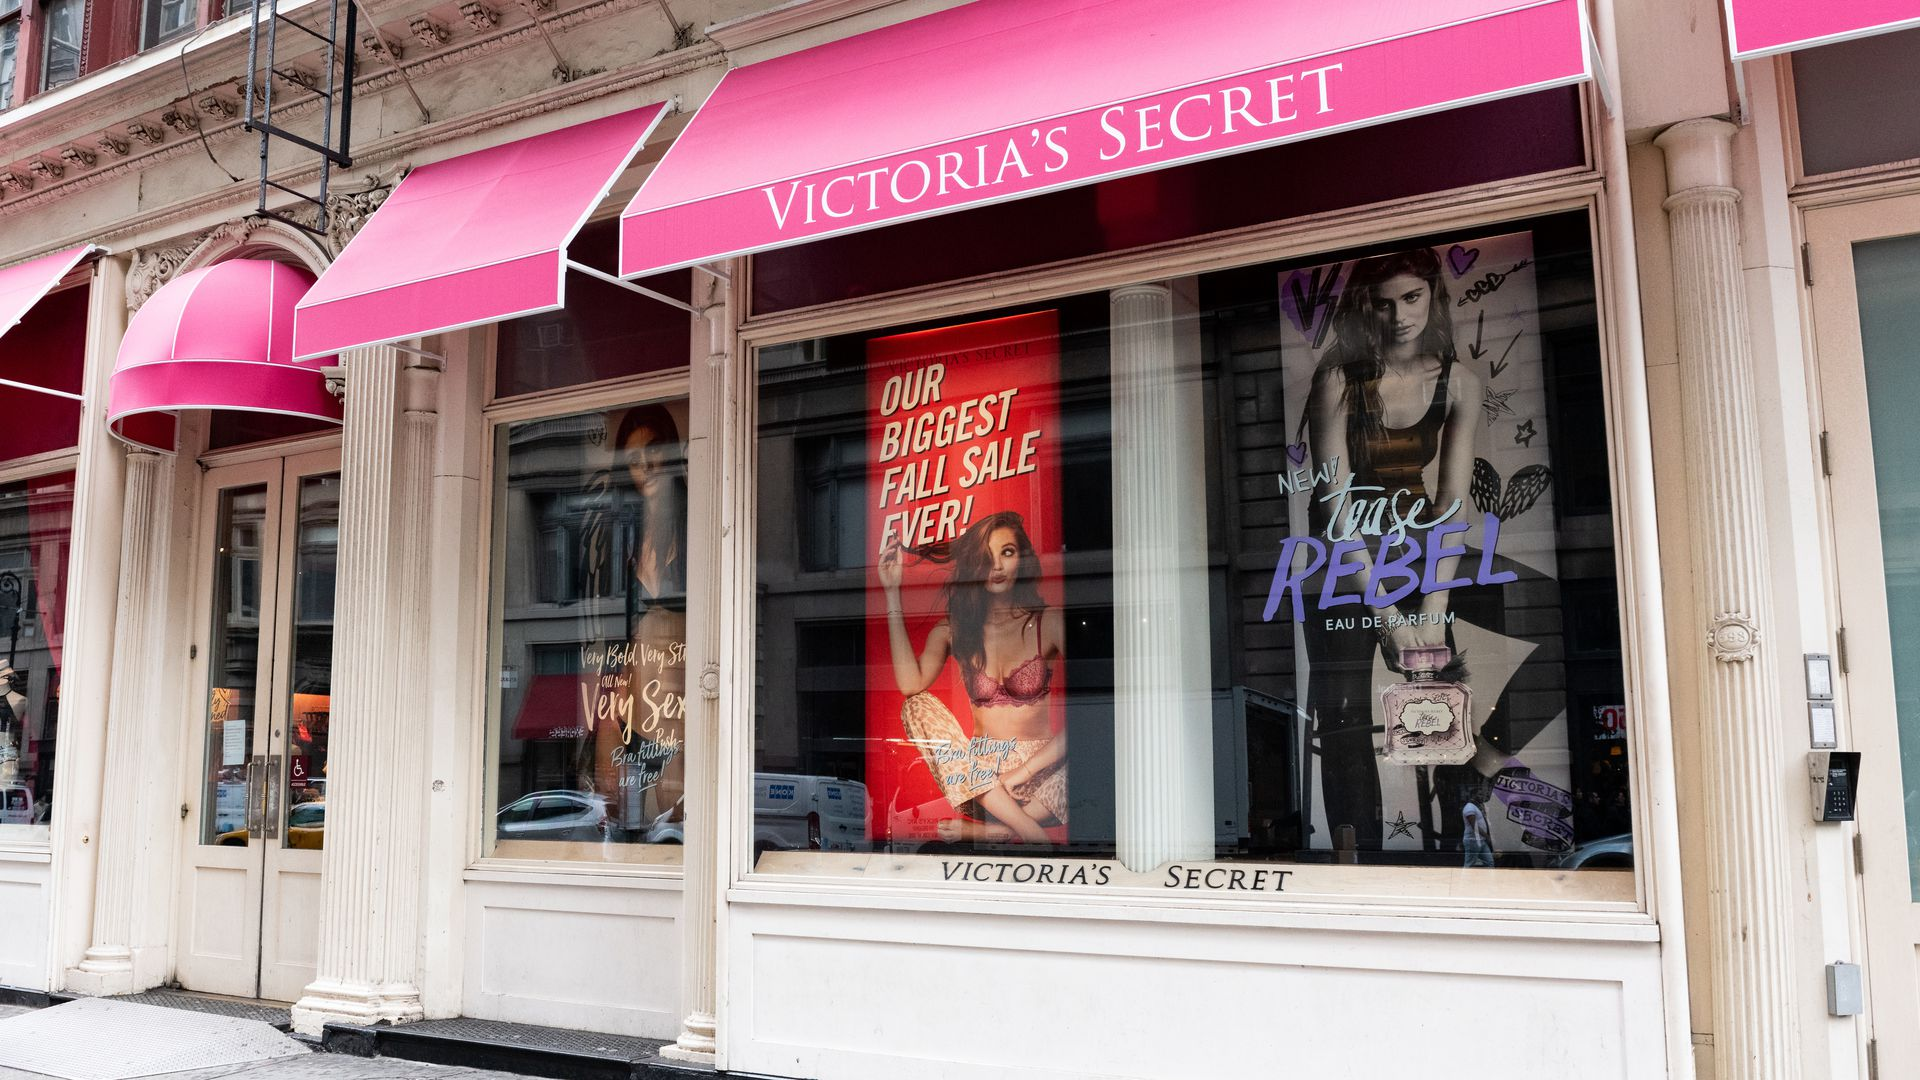 Victoria's Secret store in the SoHo neighbourhood of New York City.